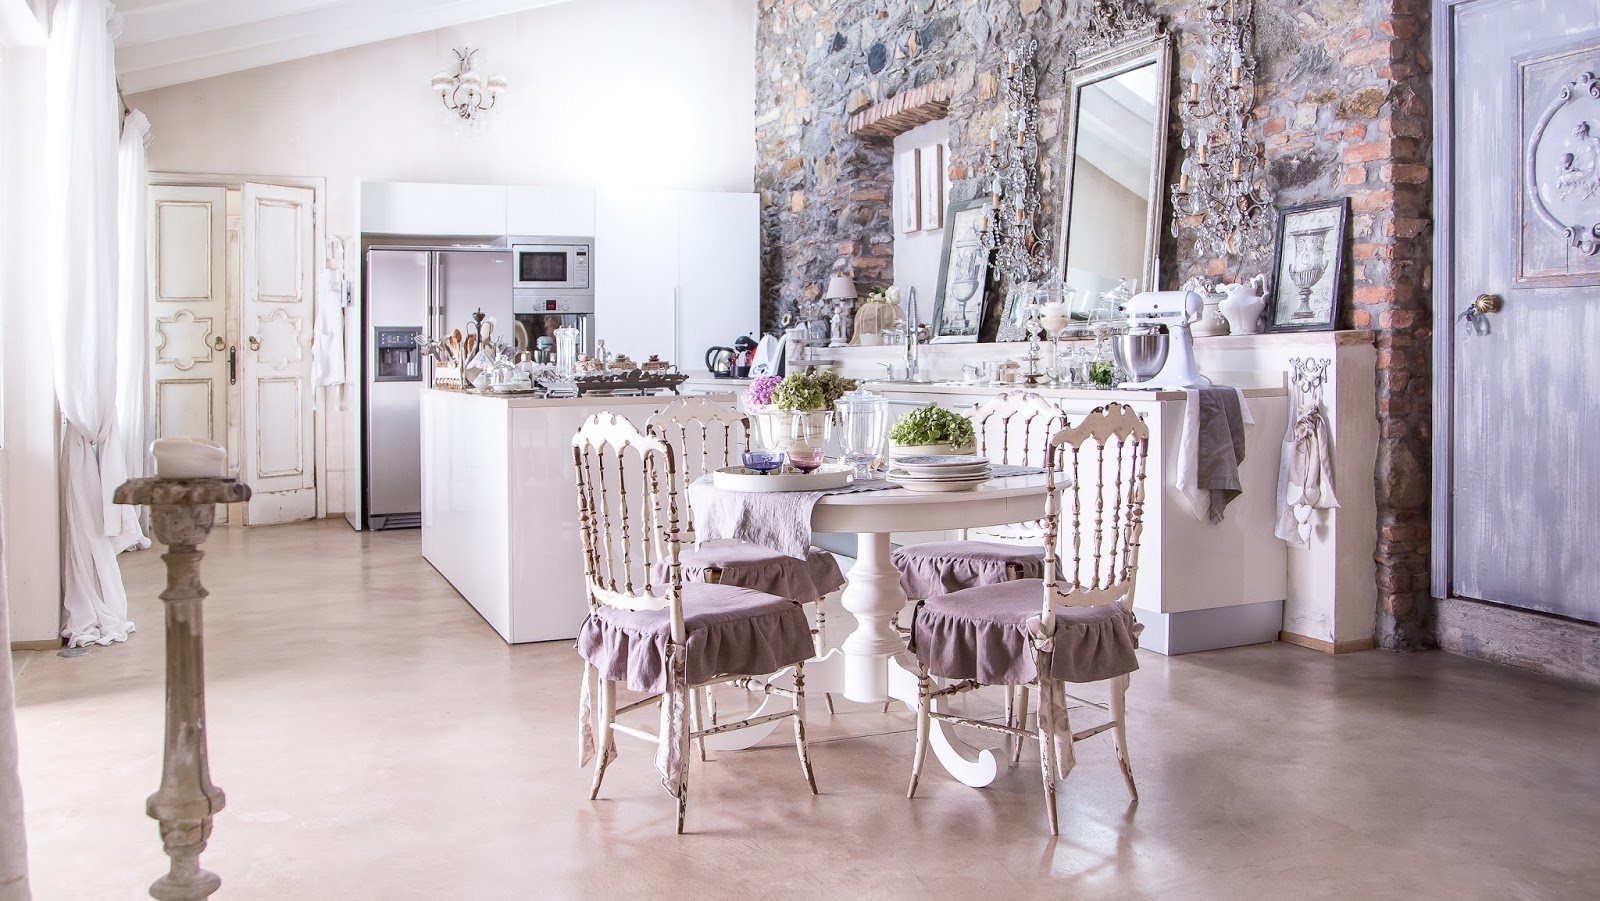 Matrimonio Country Chic Kitchen : Una casa in stile provenzale shabby chic interiors